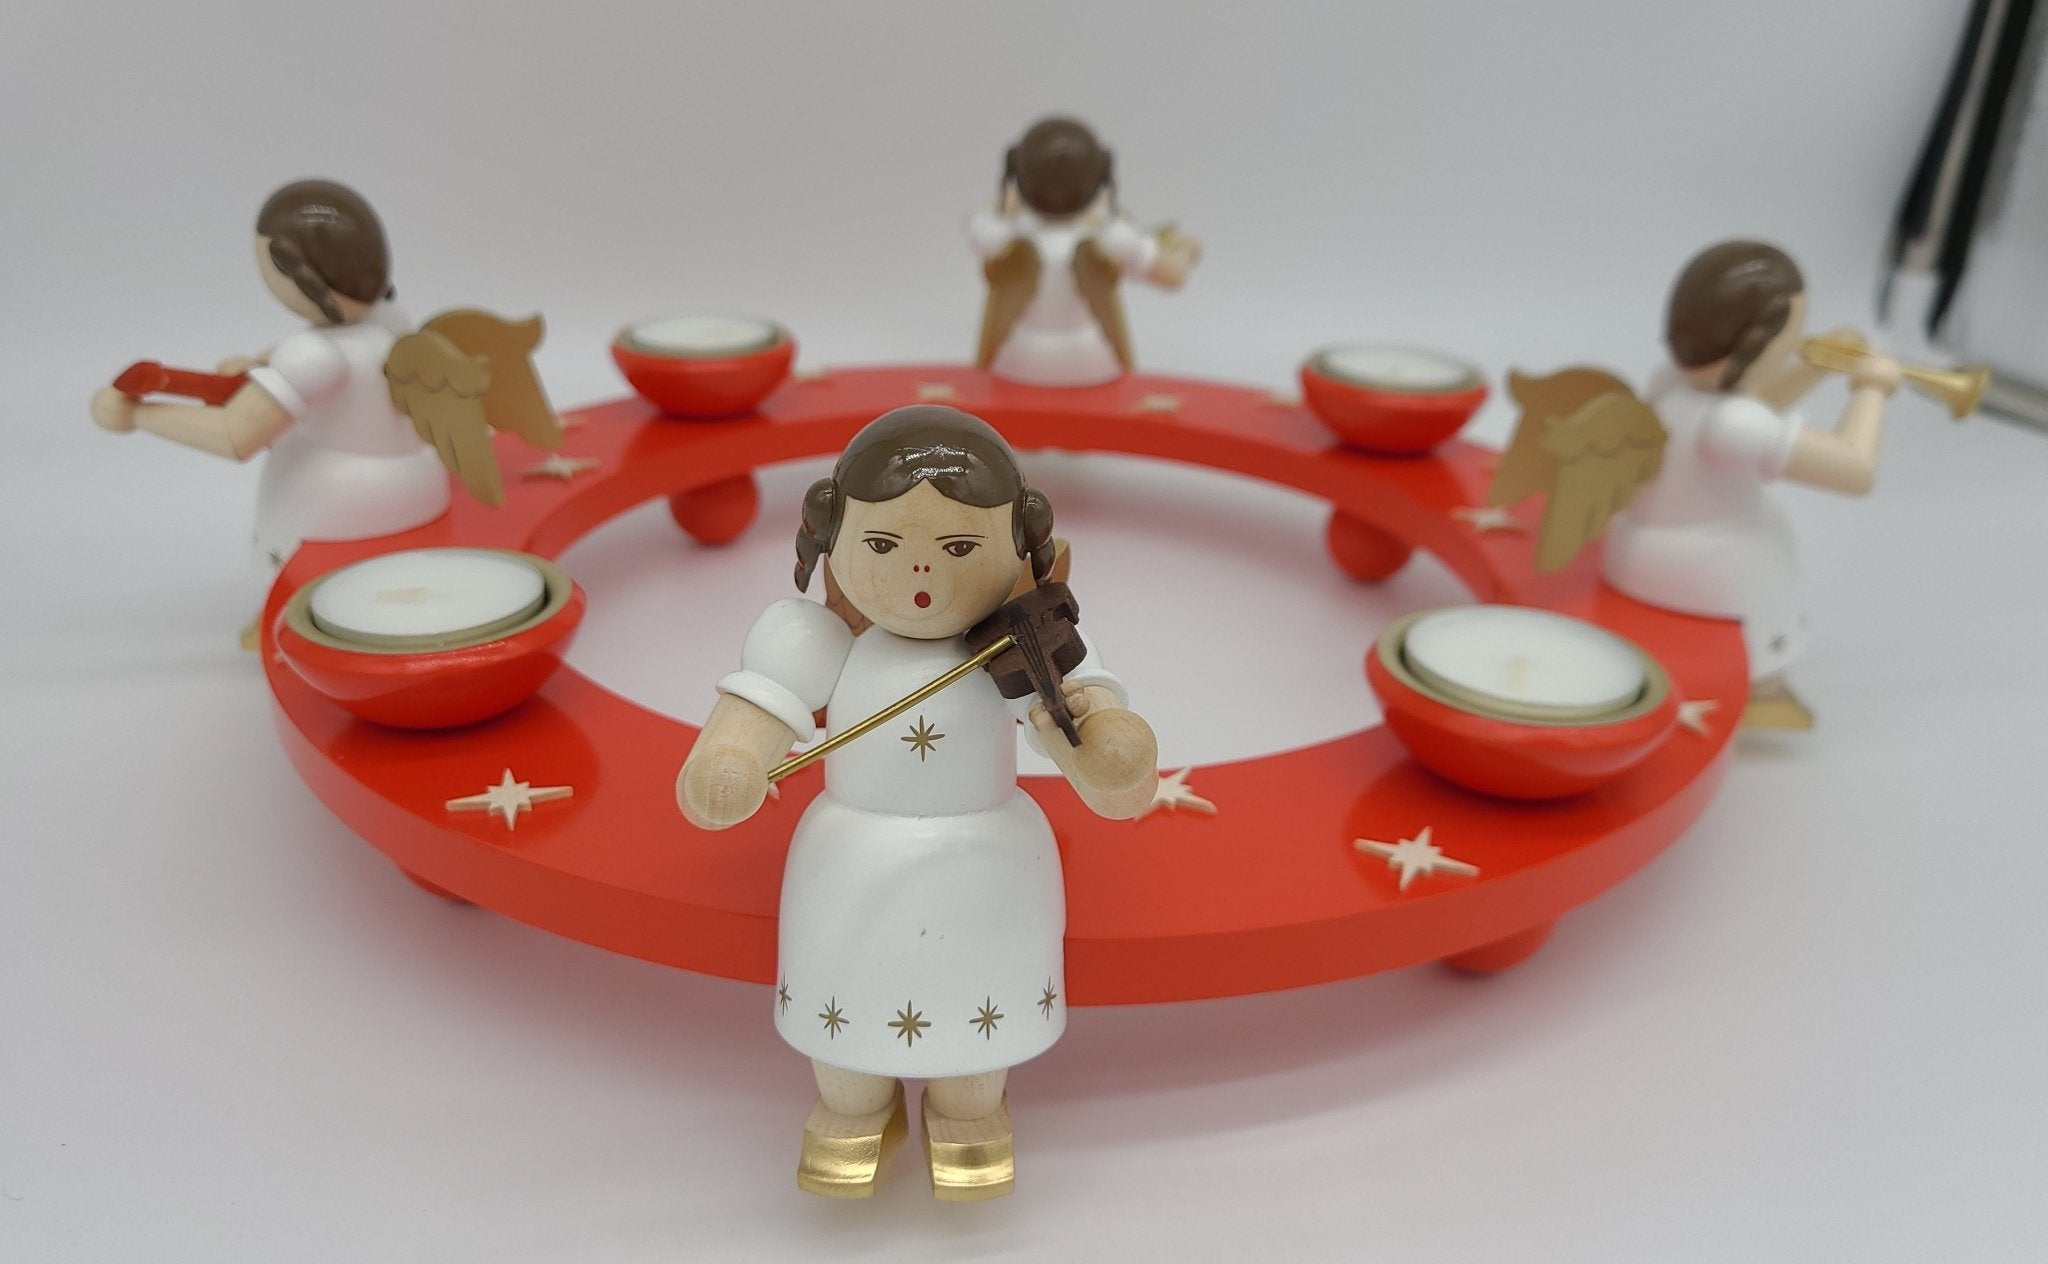 Handmade Round Wood Red Candle holder for tealights with 4 angels - Schmidt Christmas Market Christmas Decoration